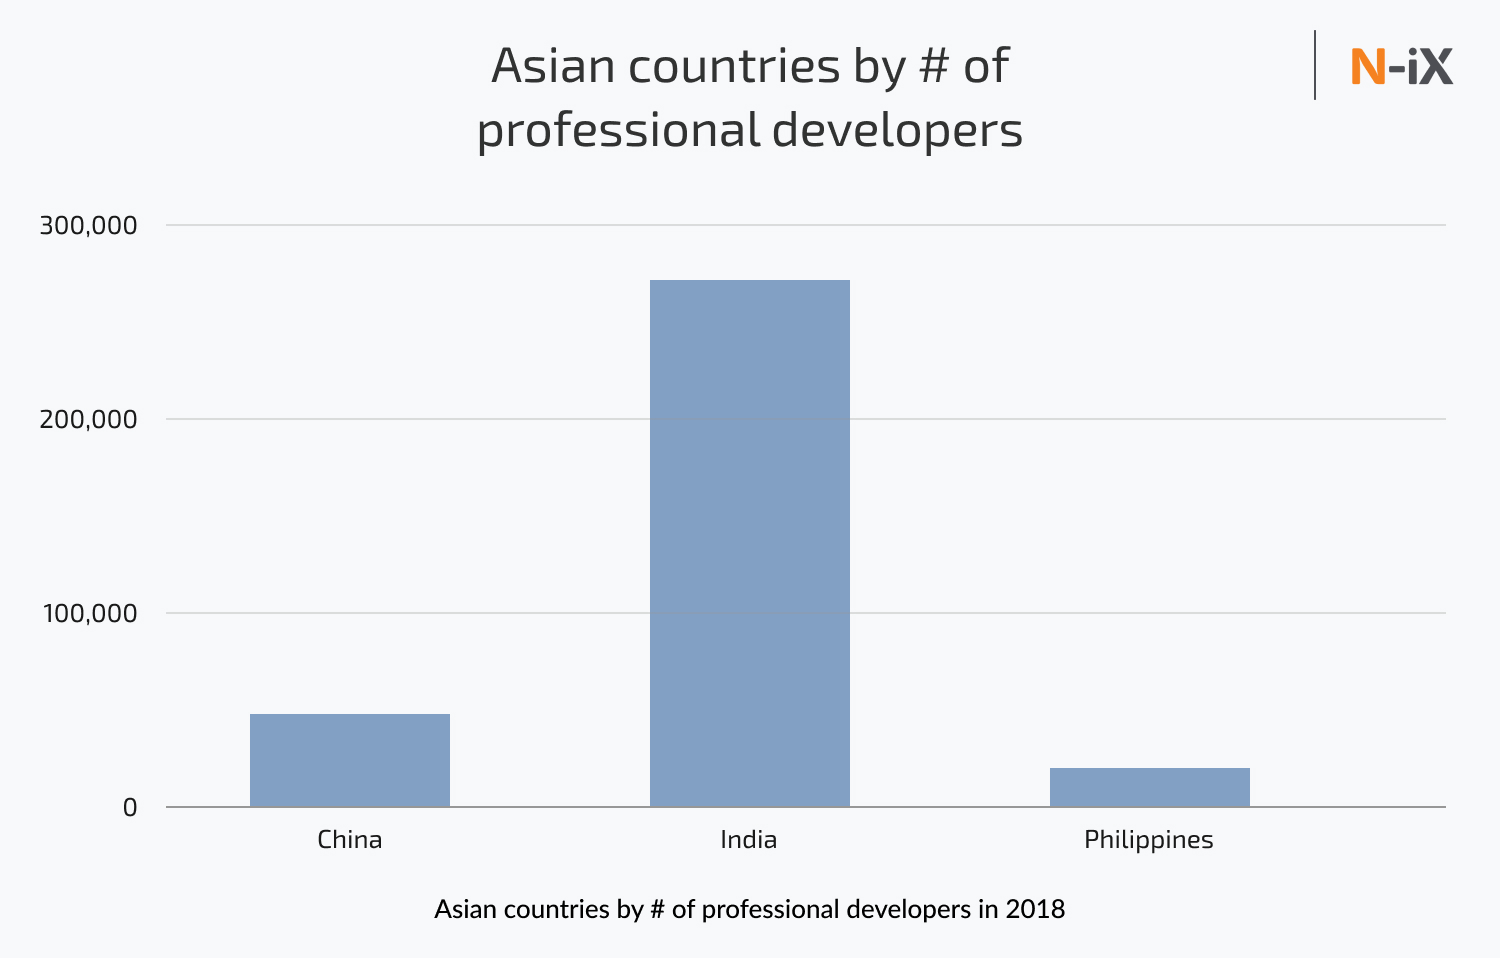 Best countries for IT outsourcing by the number of professional developers in Asia